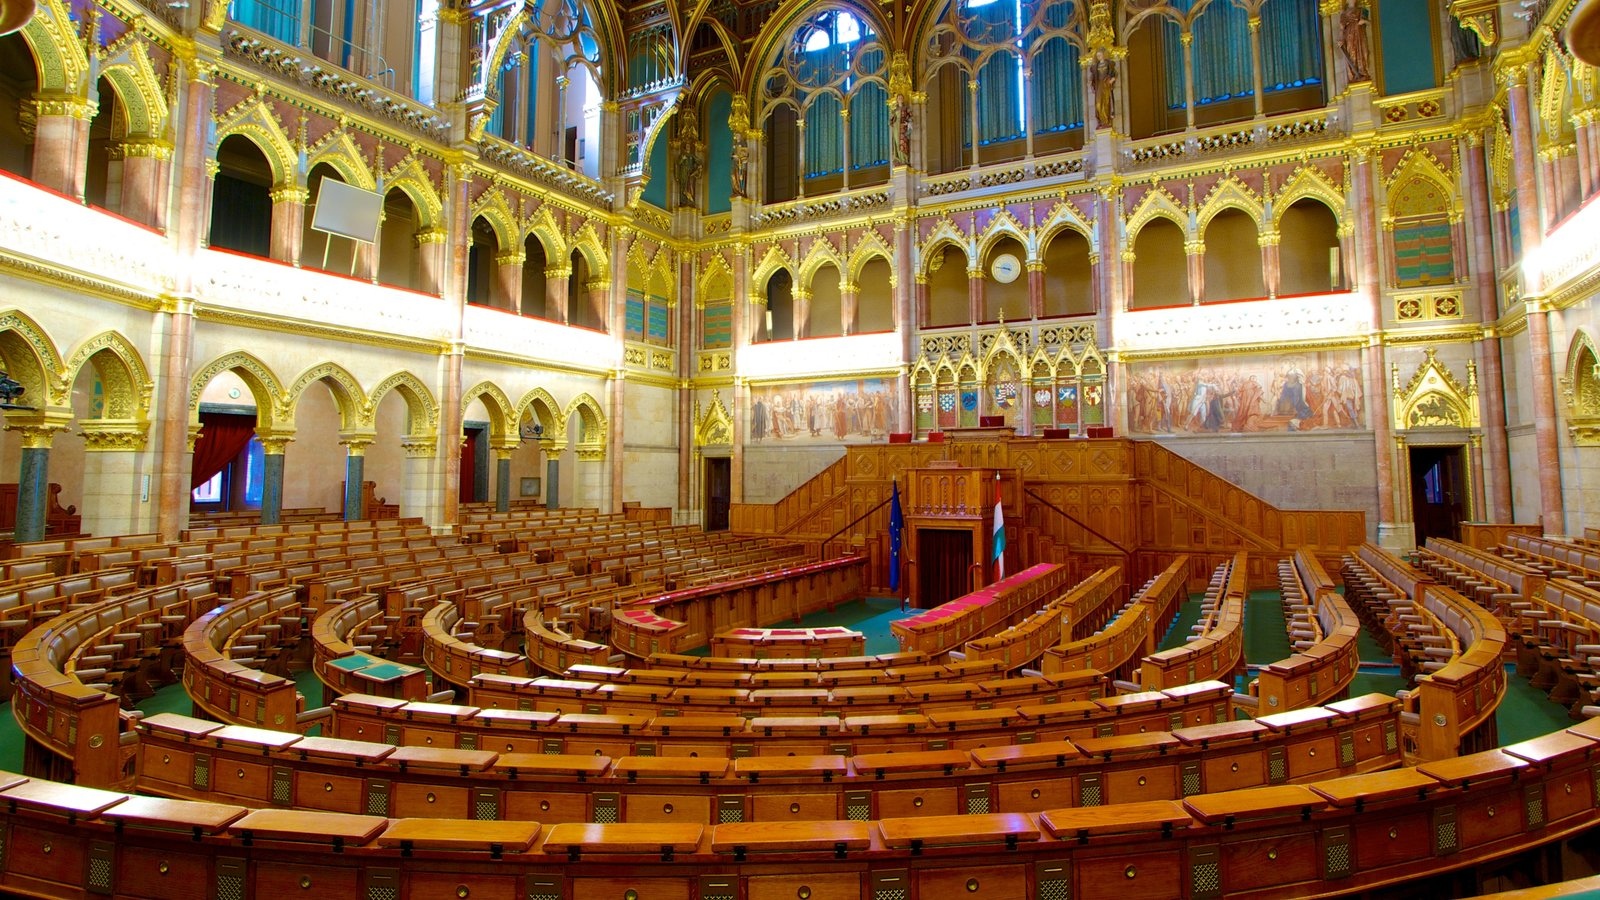 Parliament Building which includes interior views, an administrative building and heritage architecture